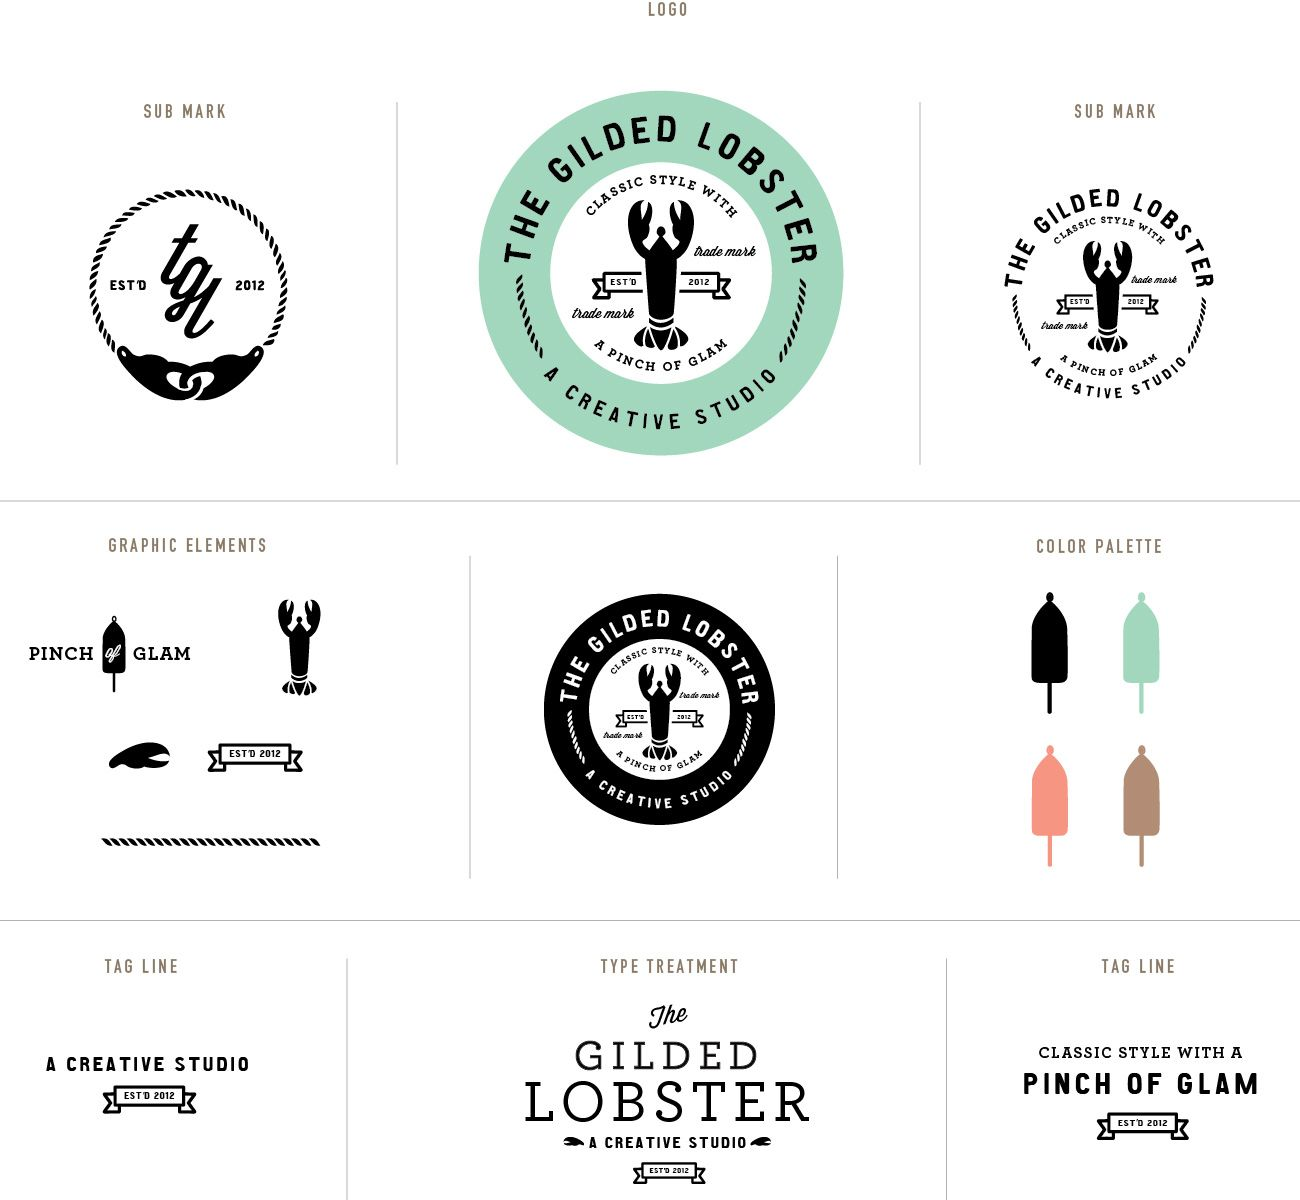 great way to show logo variations. thought of everything you.